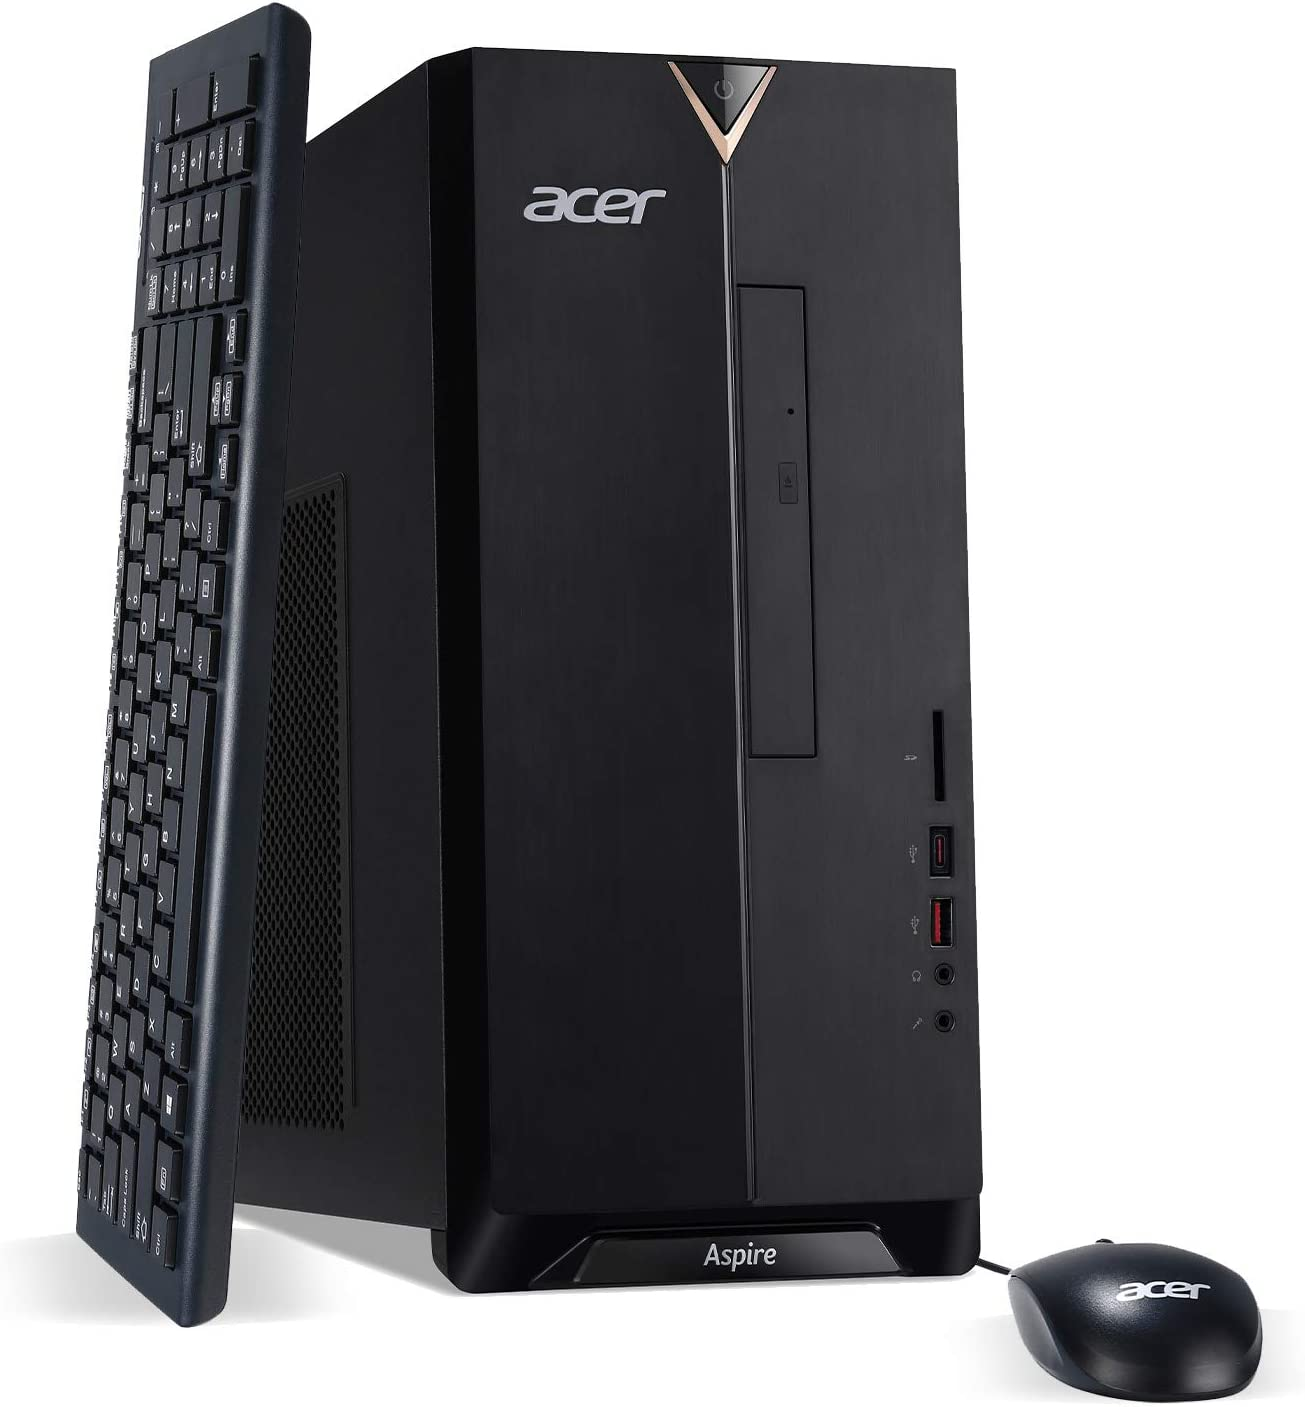 Acer Aspire TC-885-ACCFLi3O Desktop, 8th Gen Intel Core i3-8100, 8GB DDR4 16GB Optane Memory, 1TB HDD, 8X DVD, 802.11ac WiFi, Windows 10 Home